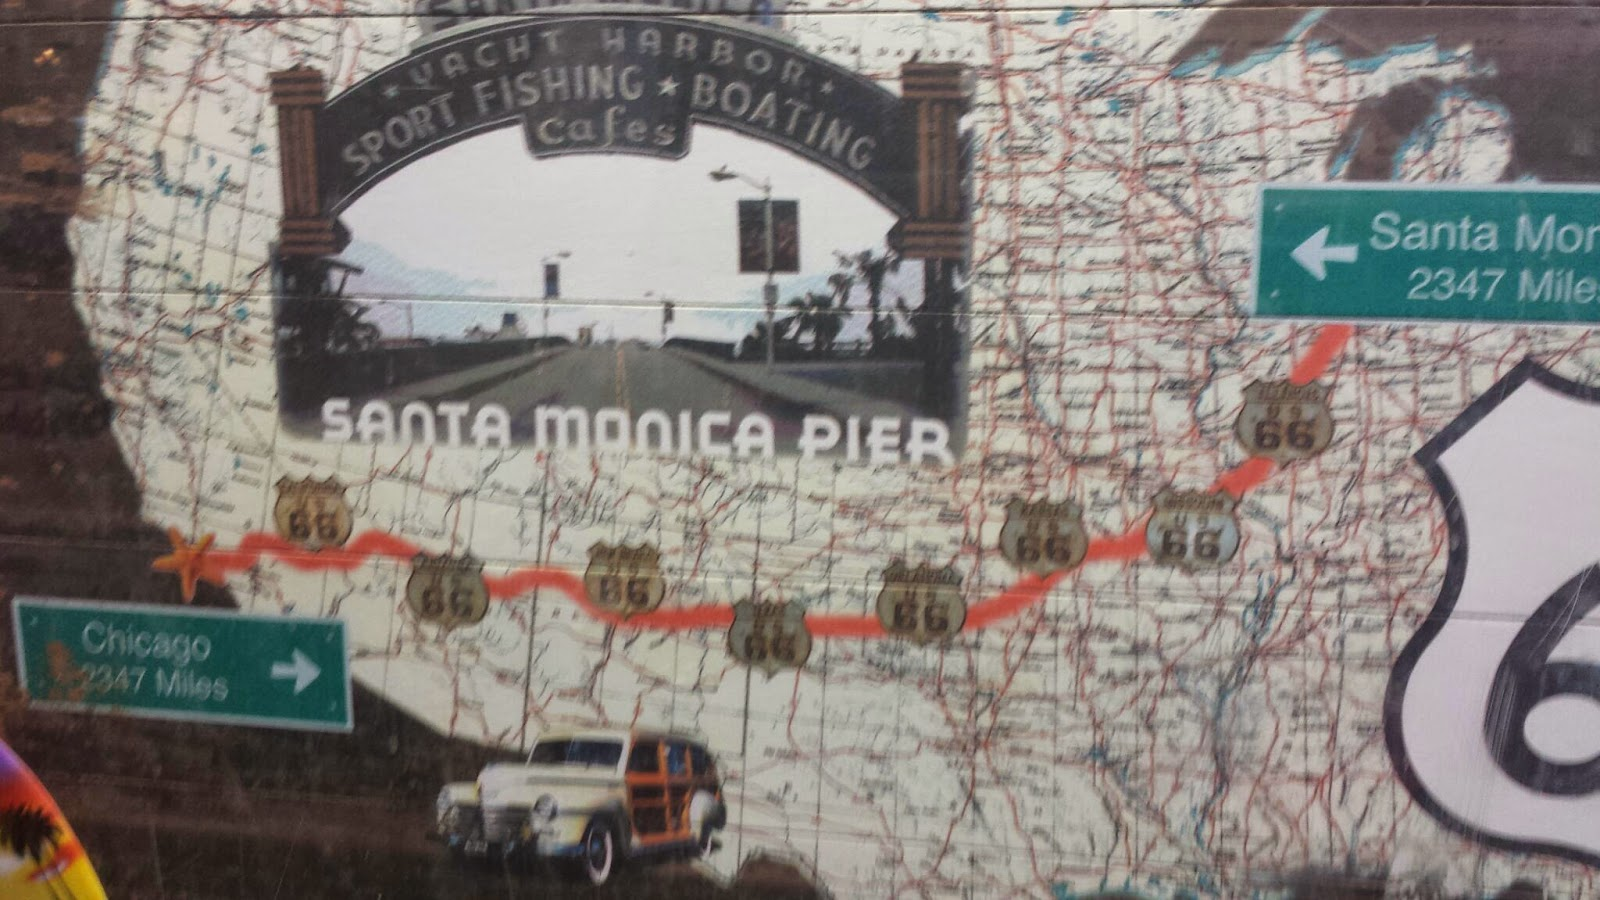 Historic US ROUTE  Map And Original Santa Monica Pier Sign As - Chicago map route 66